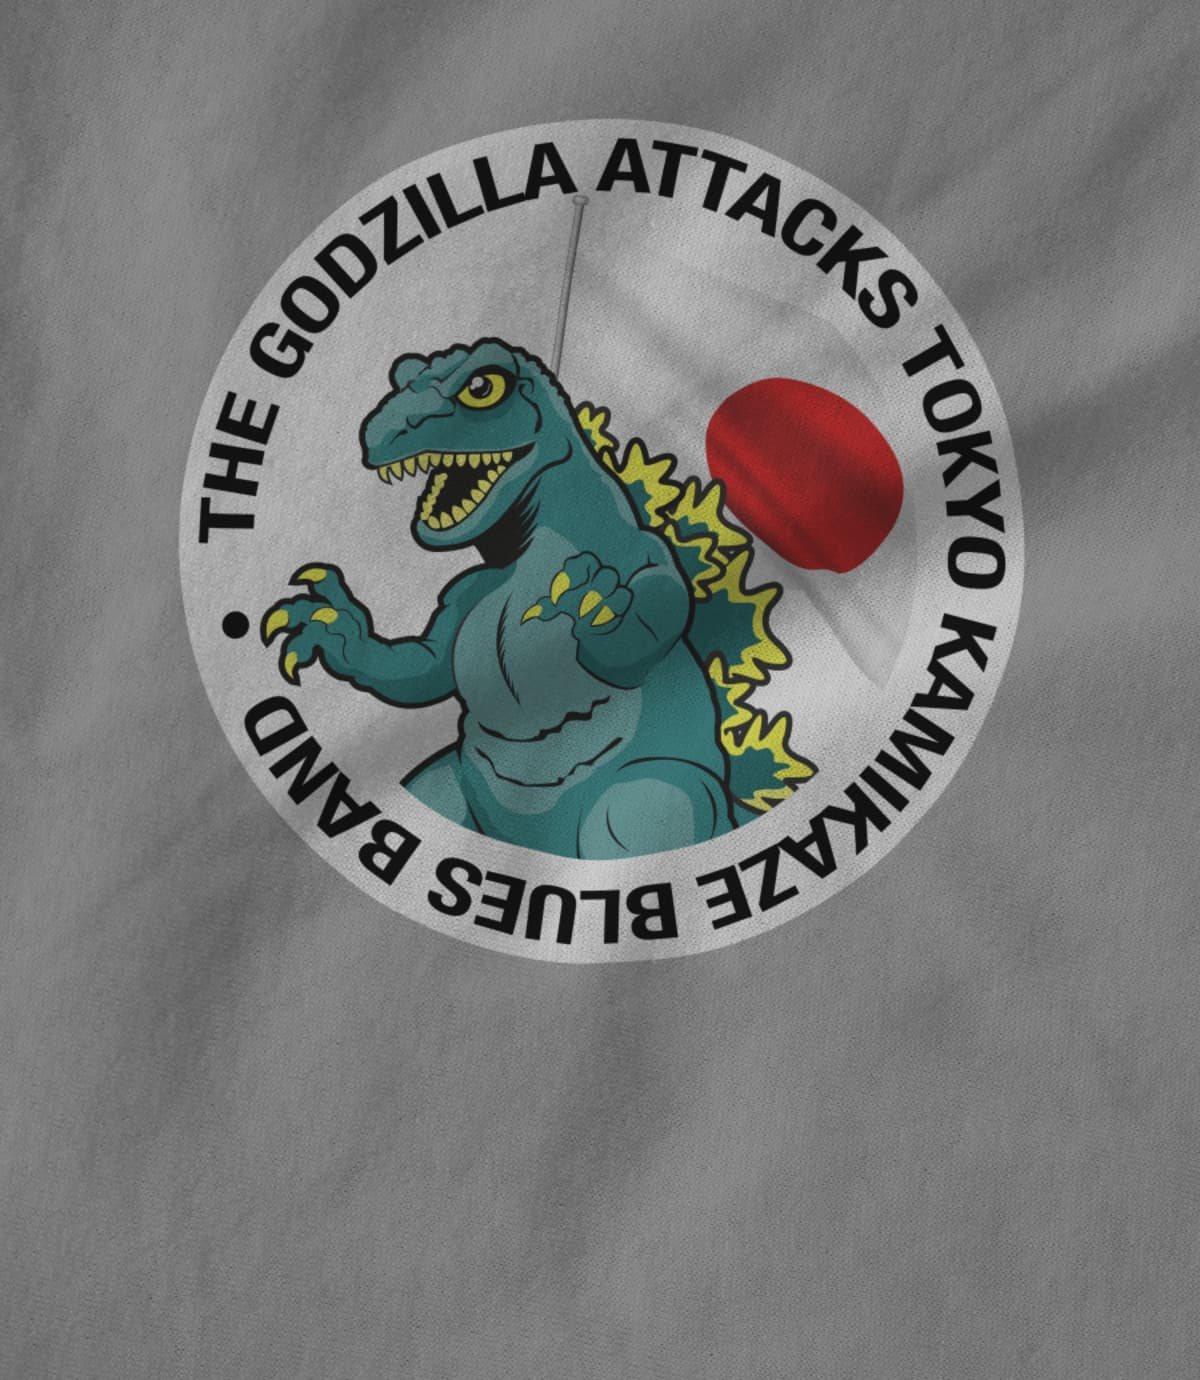 The Godzilla Attacks Tokyo Kamikaze Blues Band